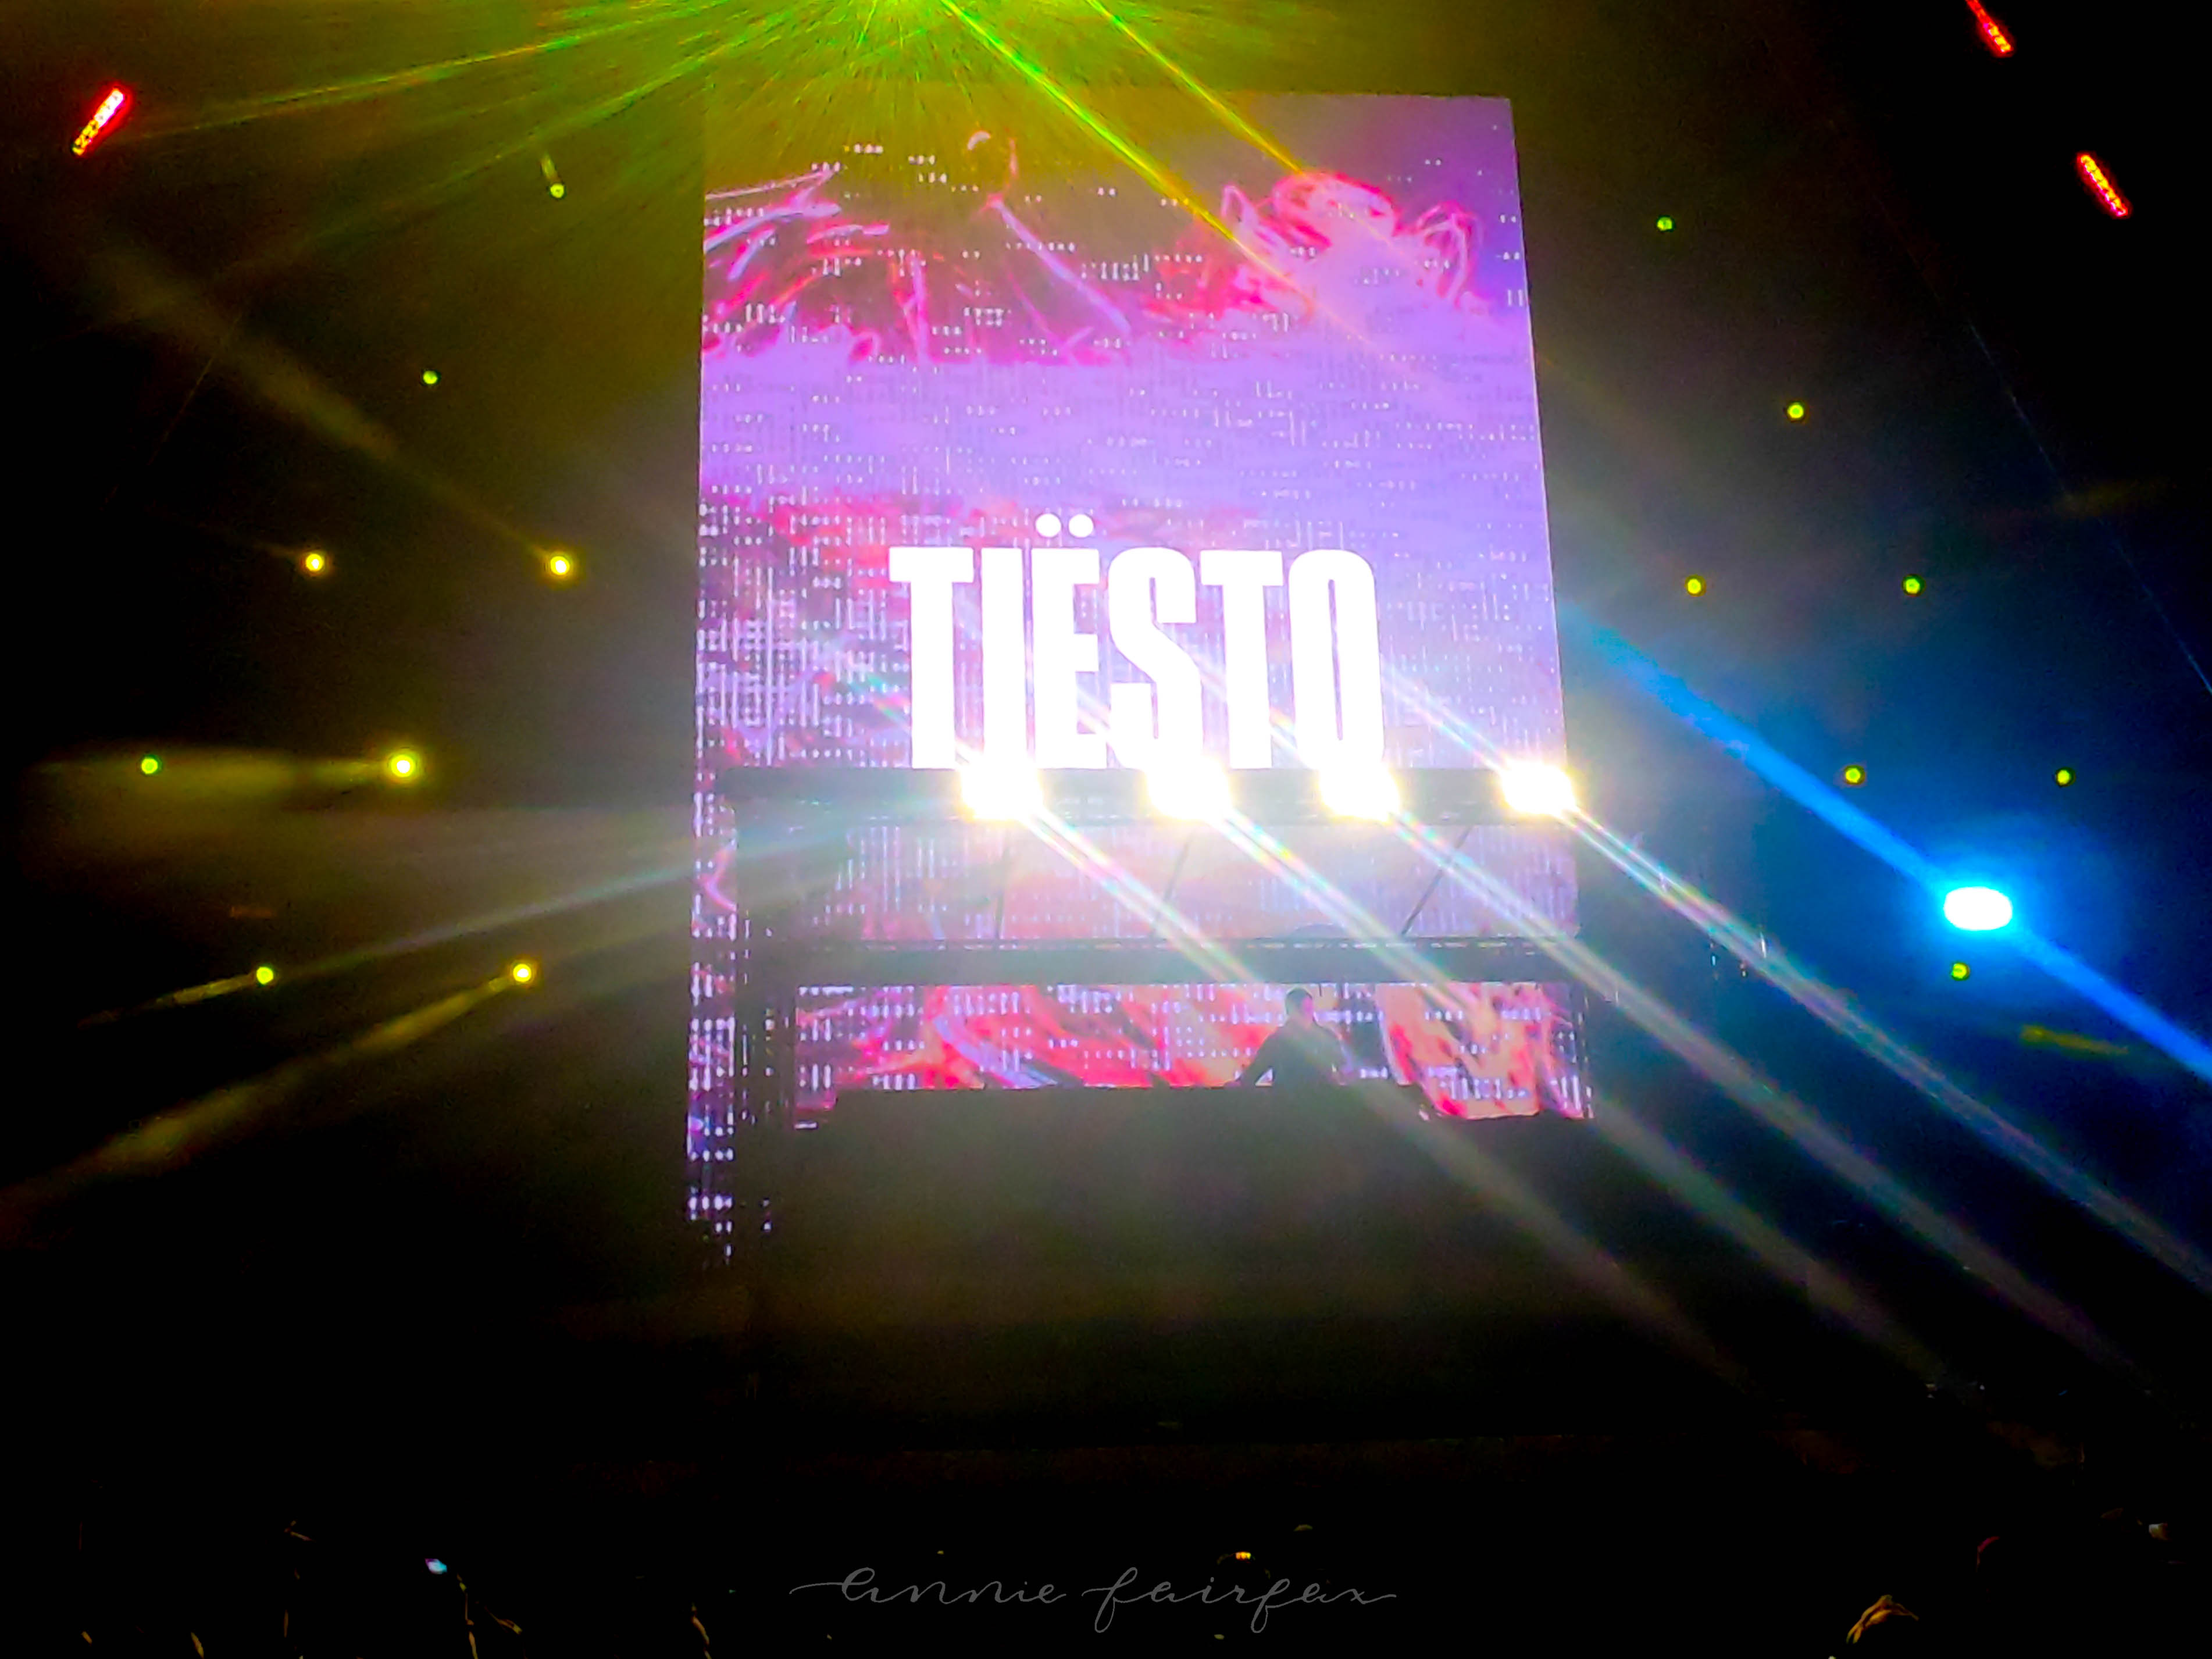 The Complete Traveler's Guide to Chicago Tiesto Spring Awakening